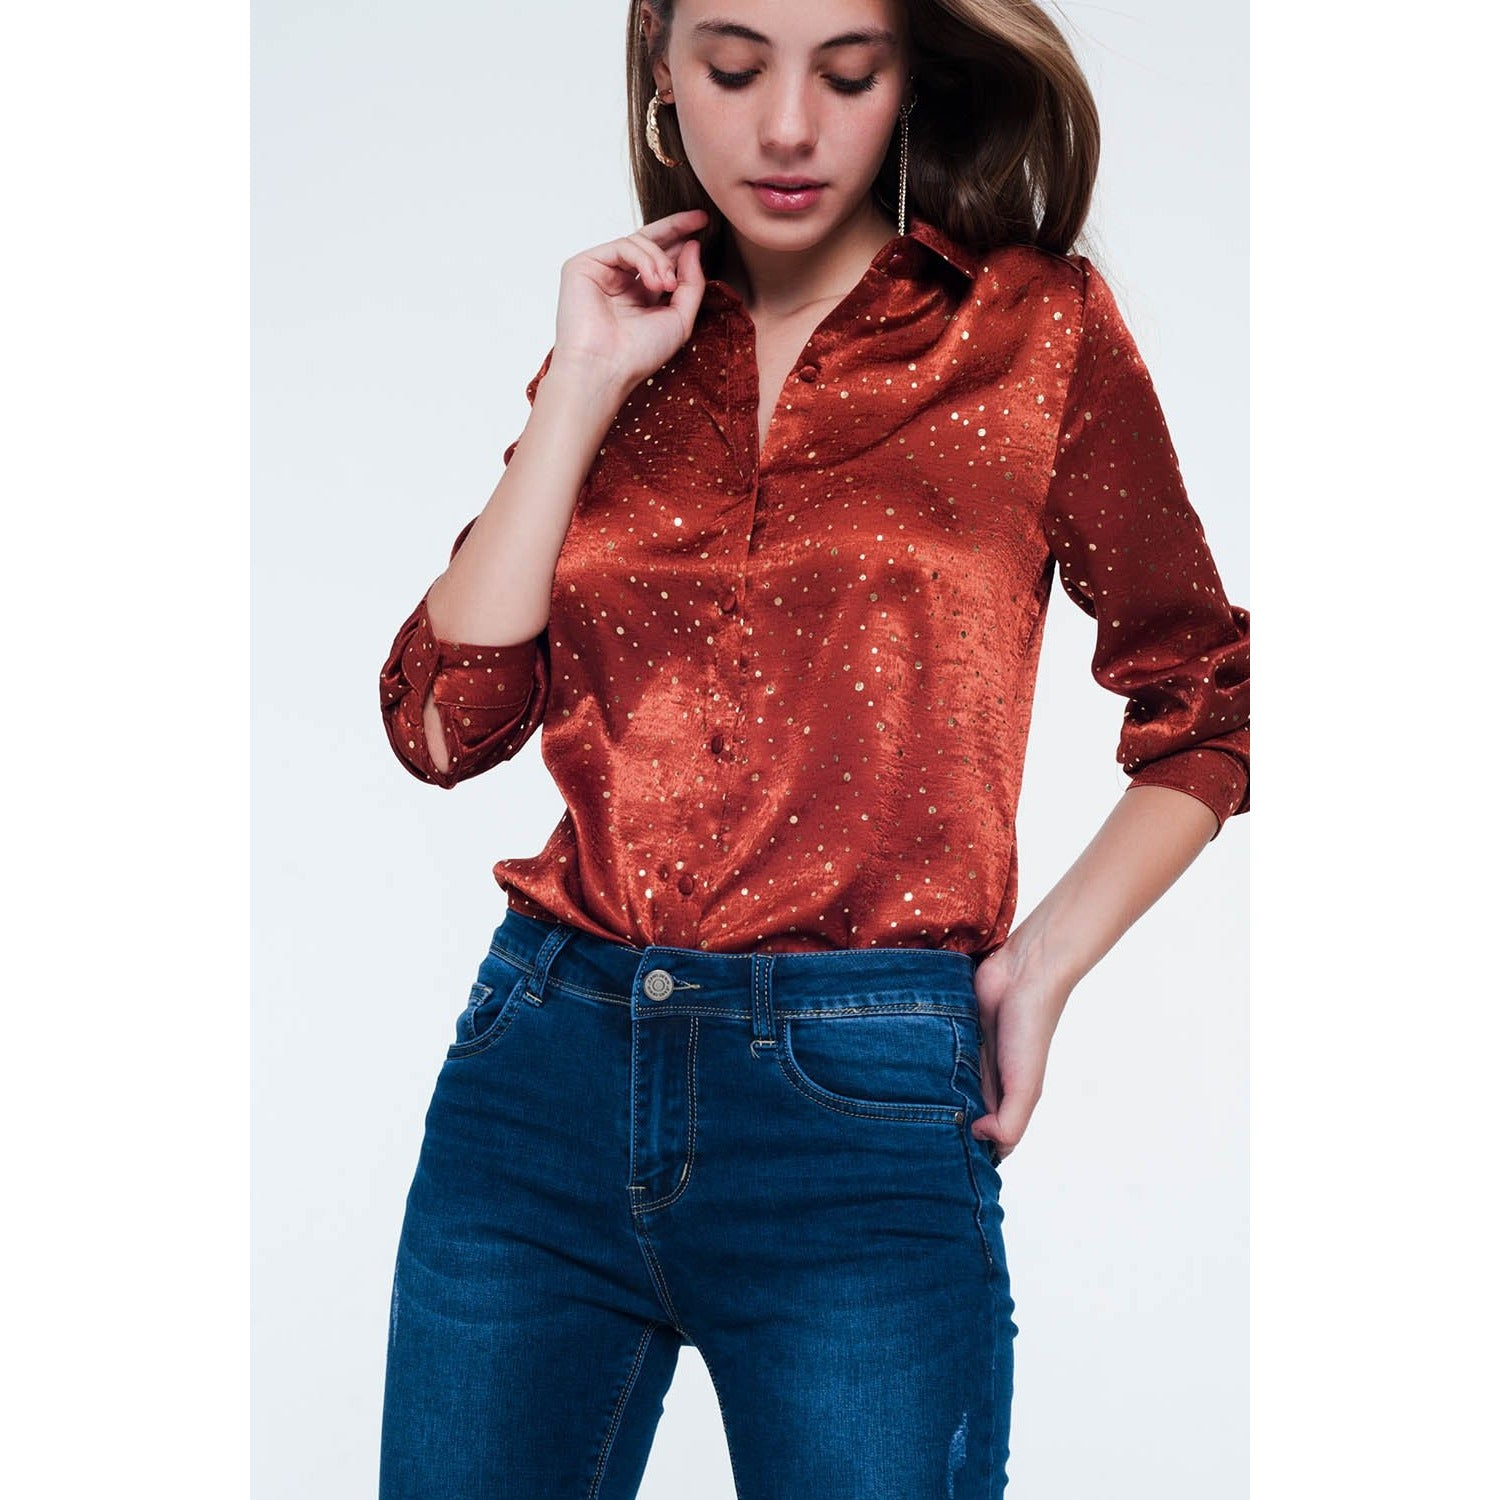 Orange Long Sleeve Blouse with Gold Spots - Miraposa